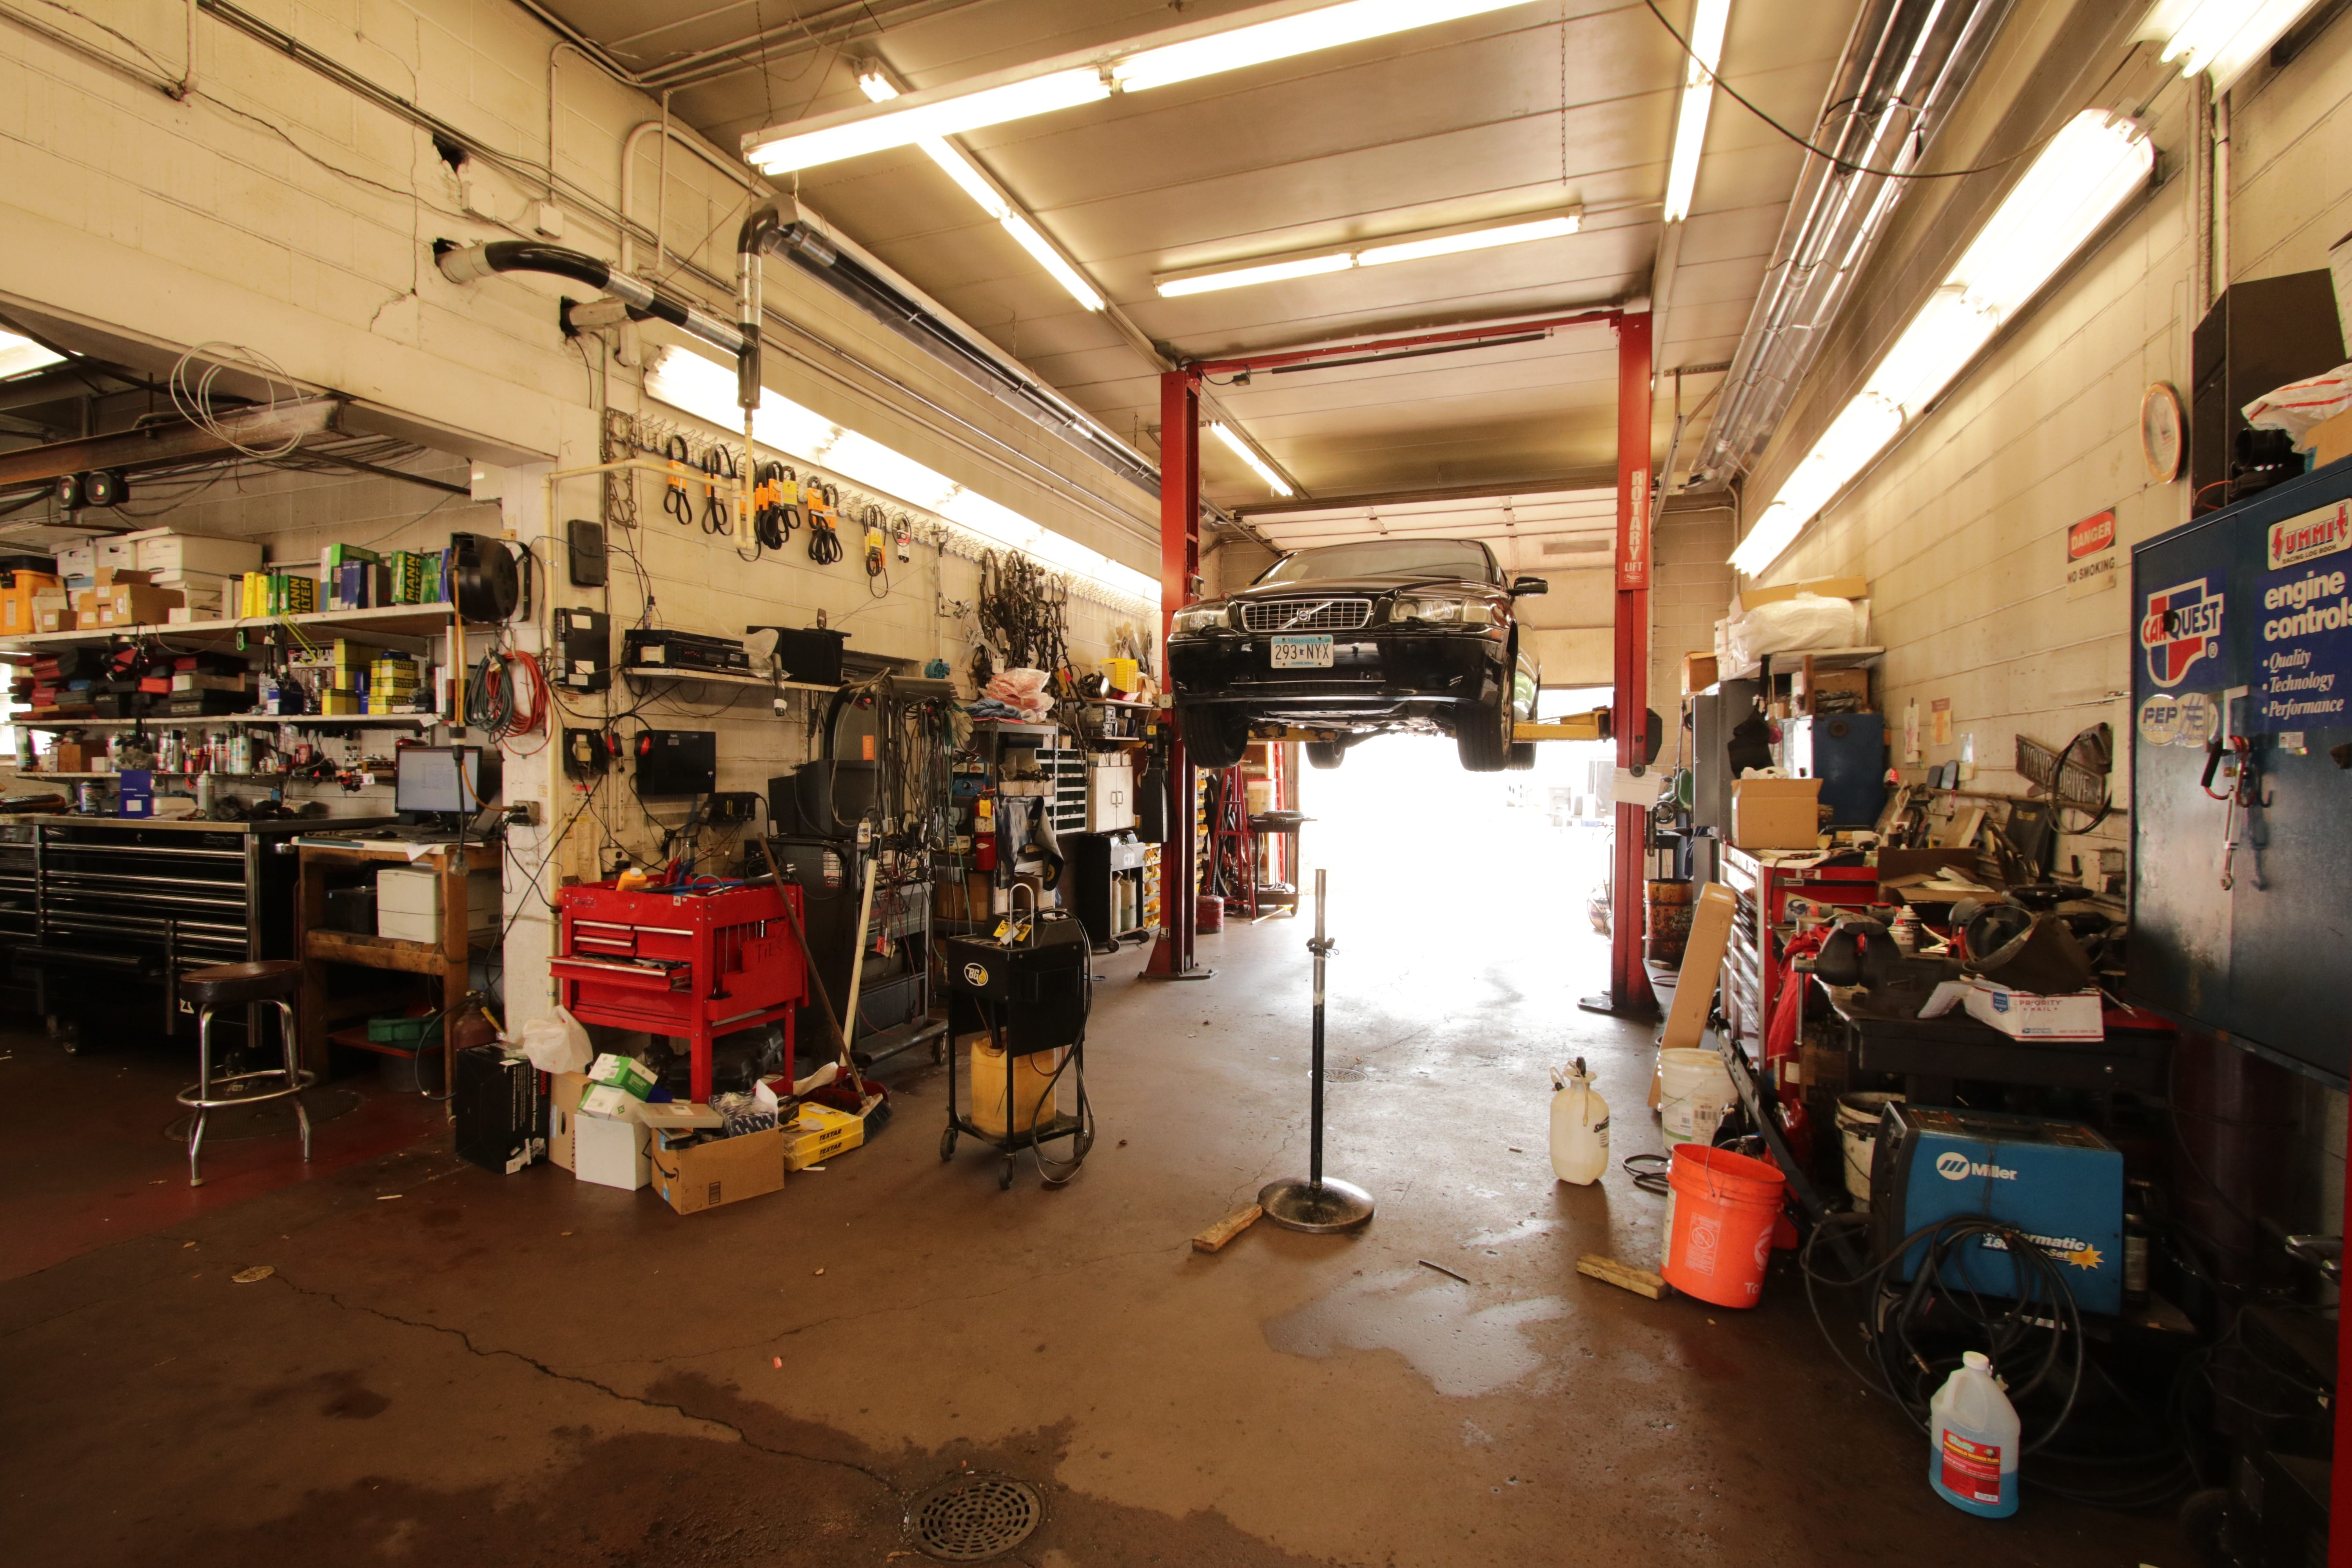 One of two repair stalls at Glasgow Automotive. Both were added after Mike purchased the company from his father is 1976.